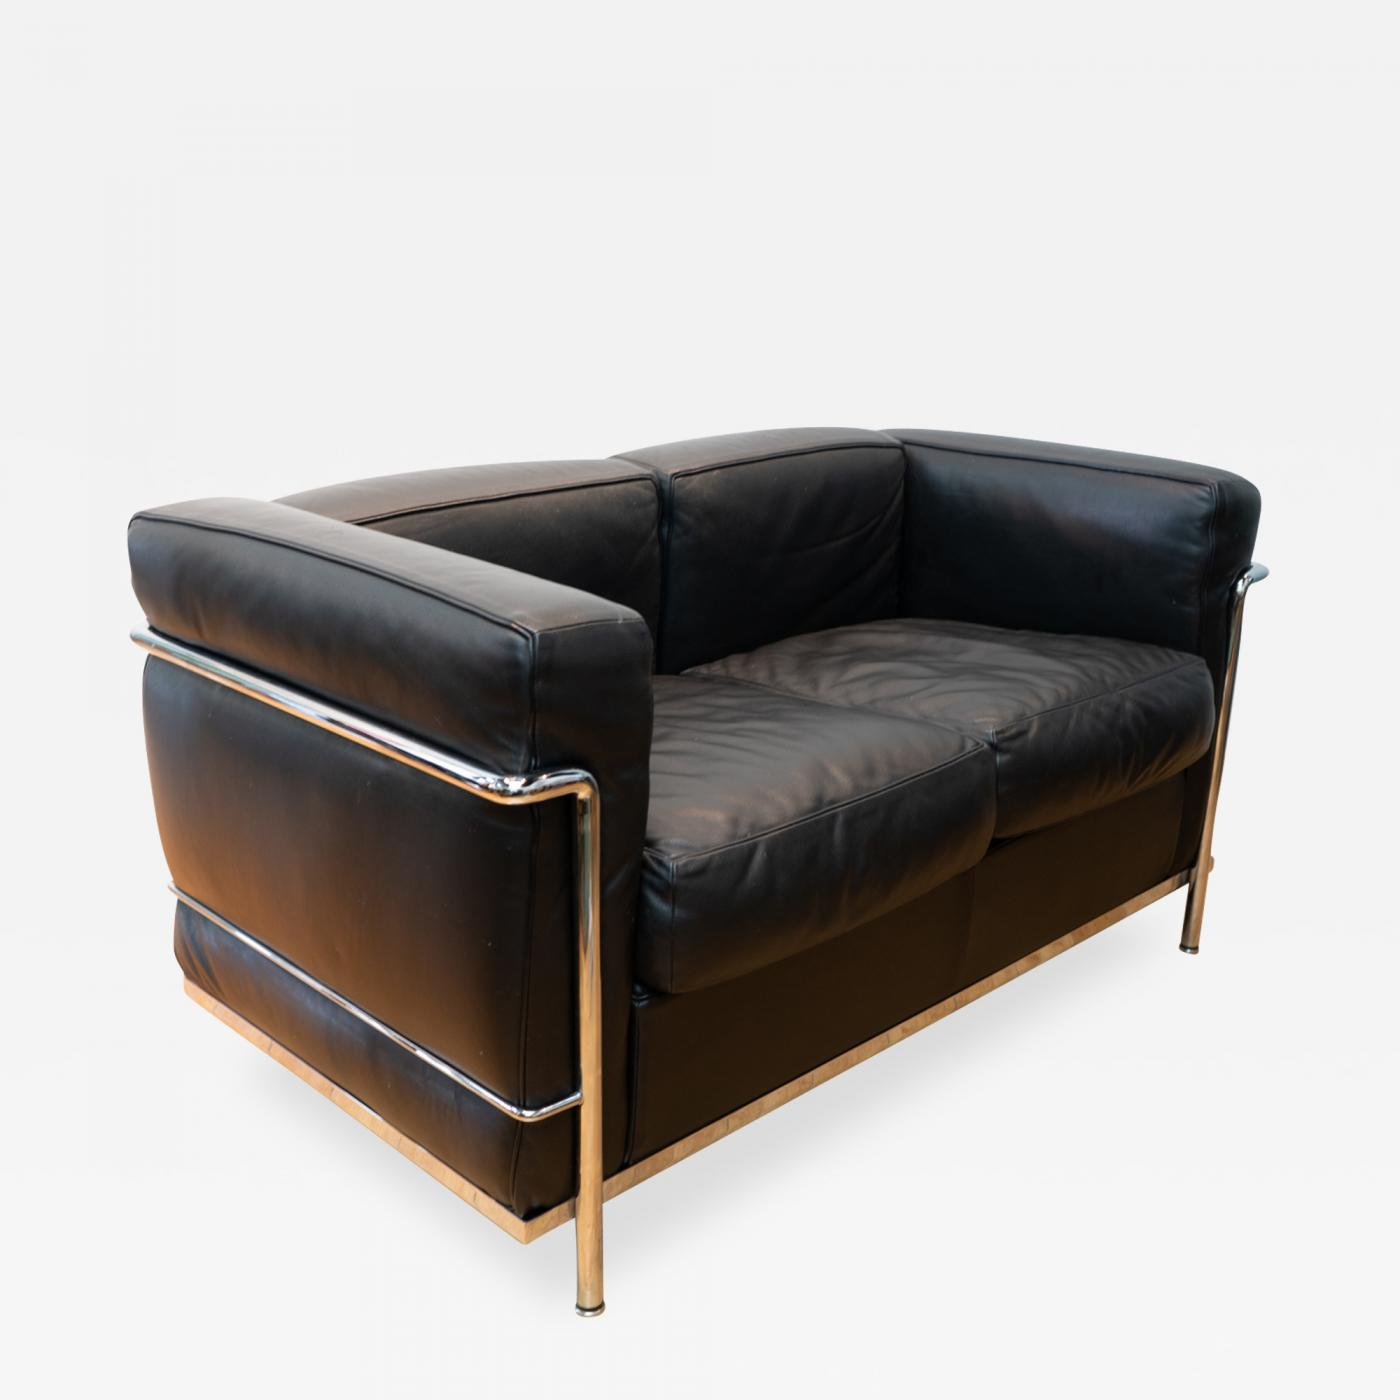 Cassina - Vintage Le Corbusier LC2 Petit Modele Two-Seat Sofa by Cassina,  Black Leather